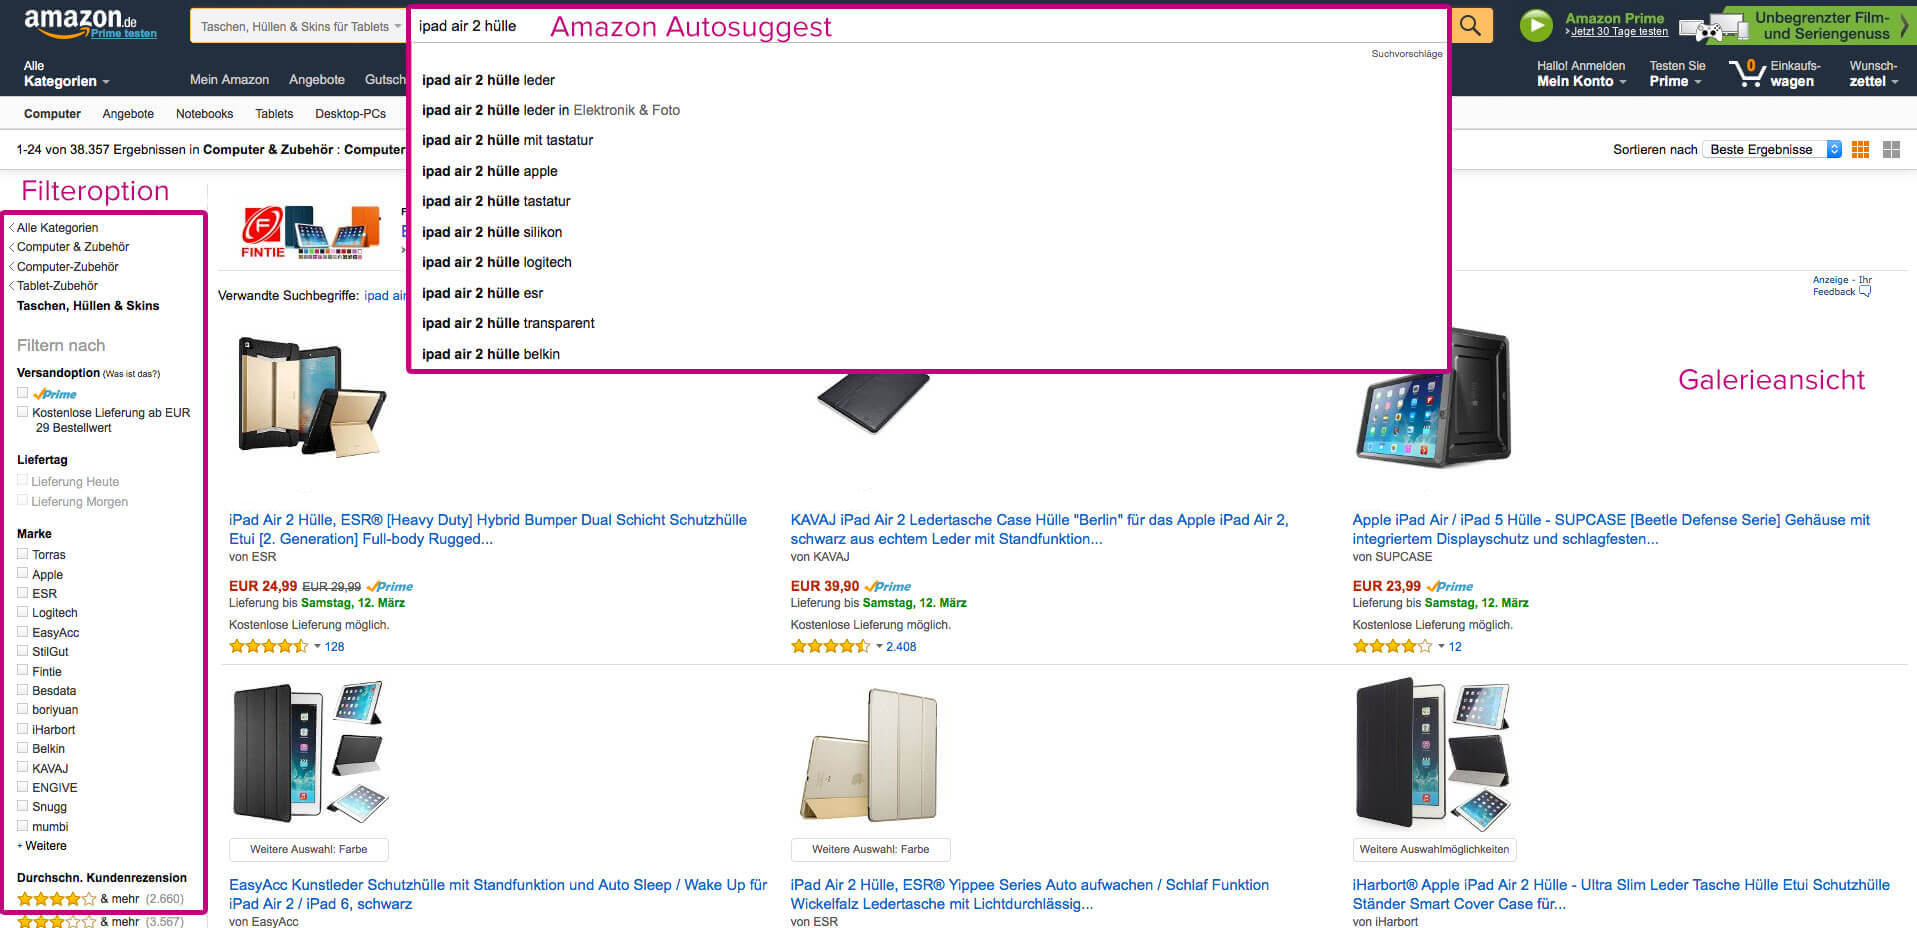 Screensho of Amazon Autosuggest usefull for Amazon SEO.